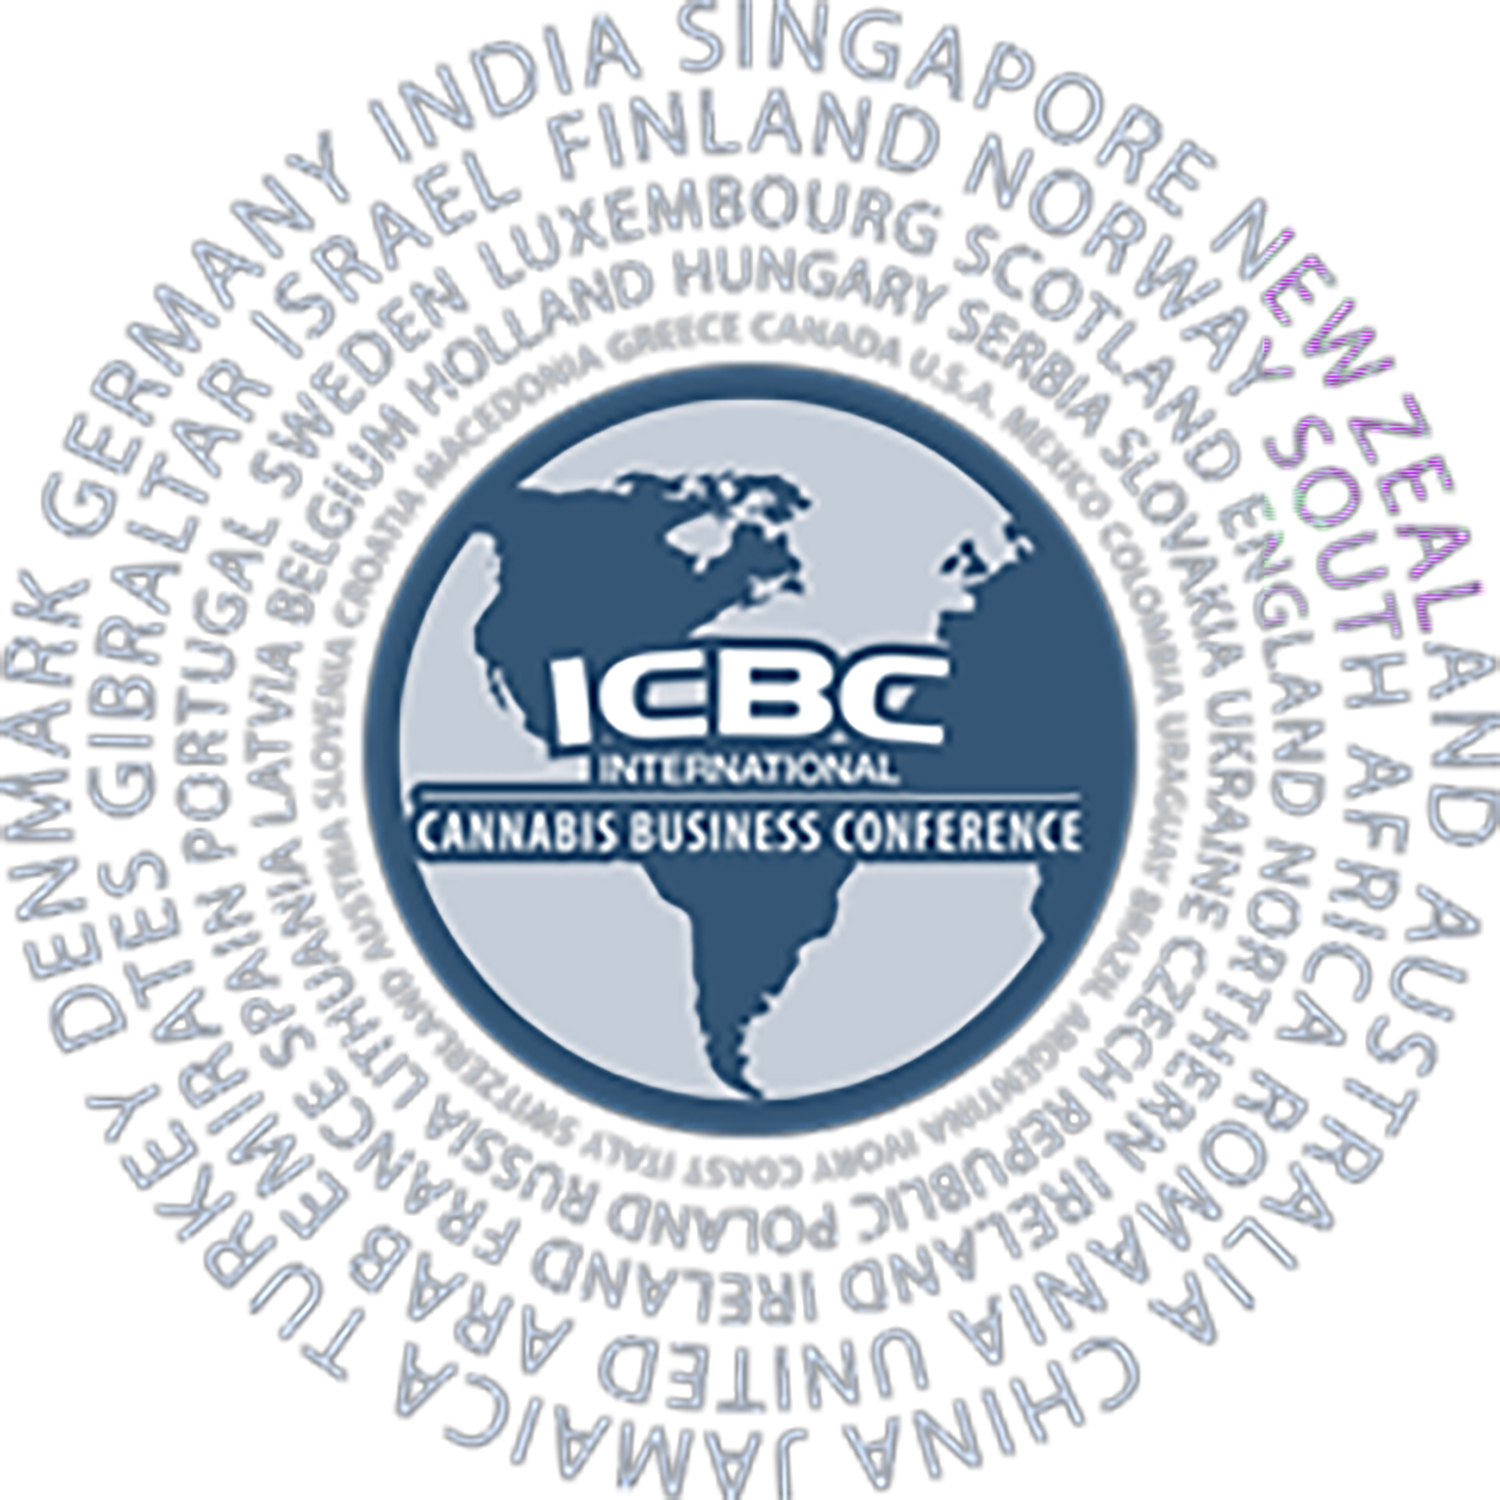 ICBC-countries-Ed_Rosenthal.jpeg